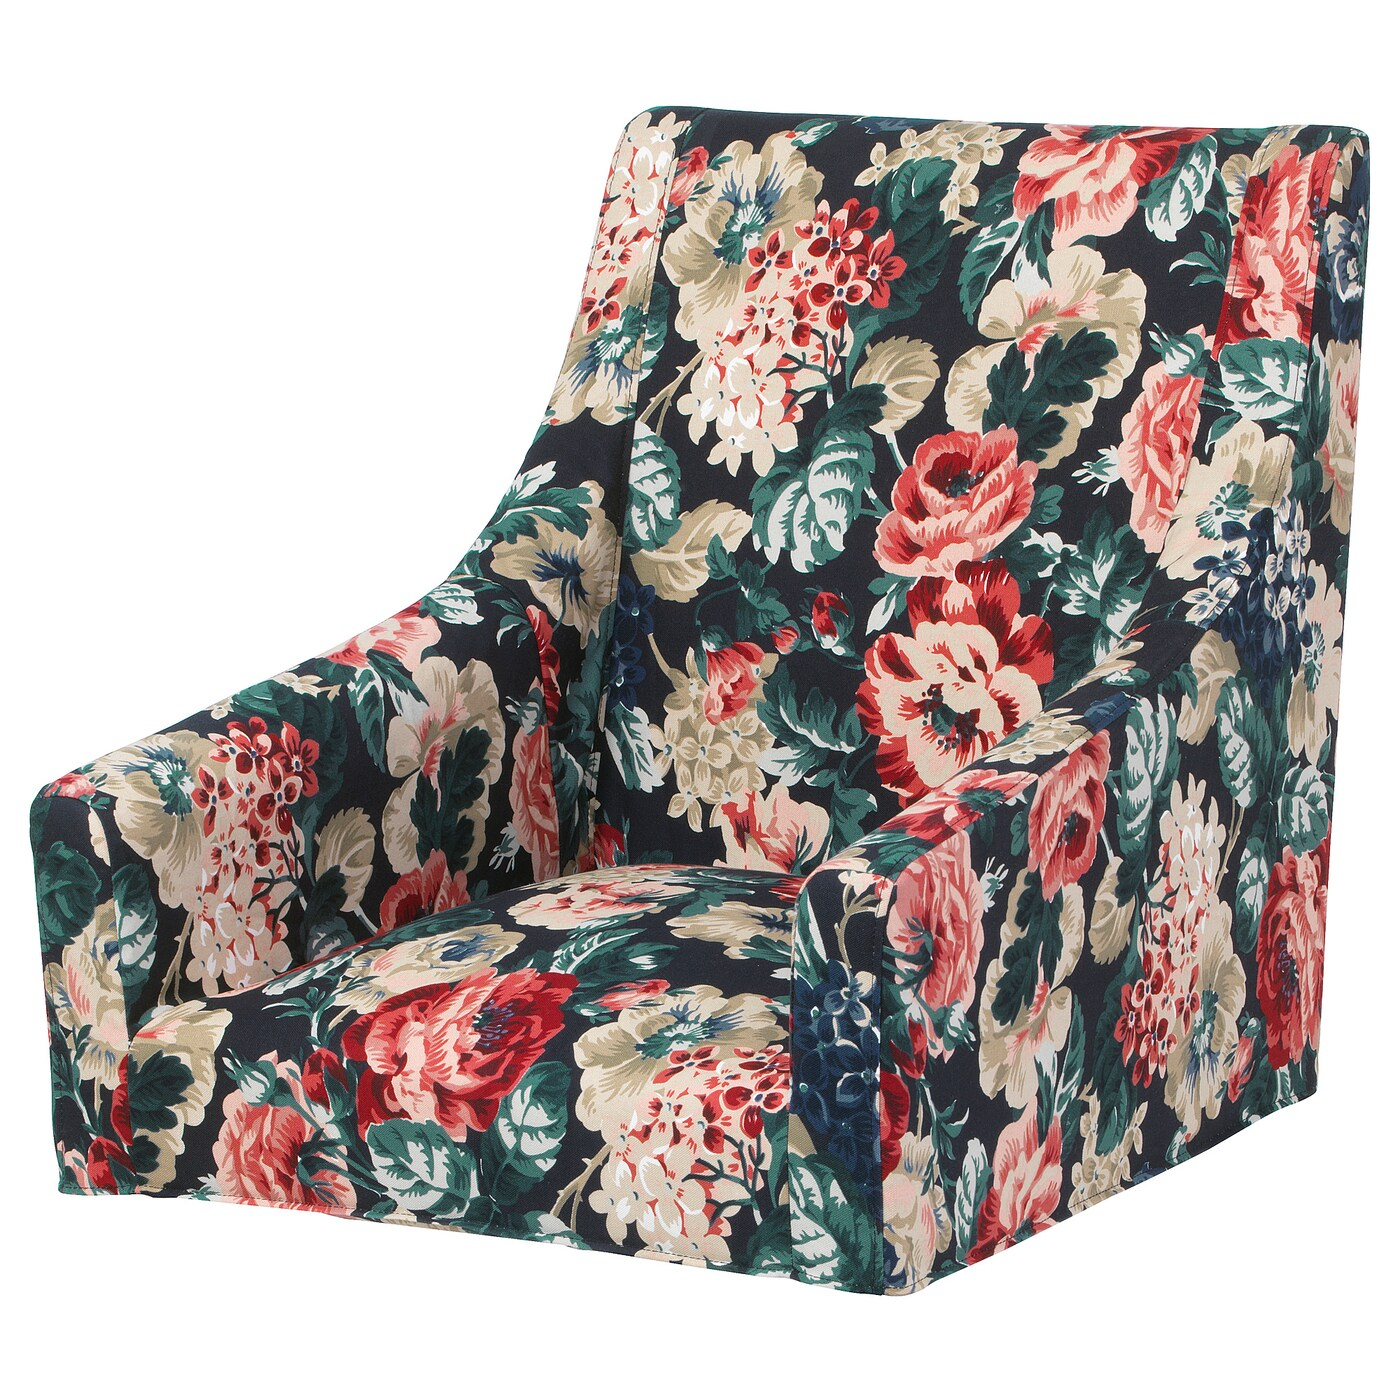 christmas chair back covers ireland steel vip dining ikea dublin sakarias cover for with armrests